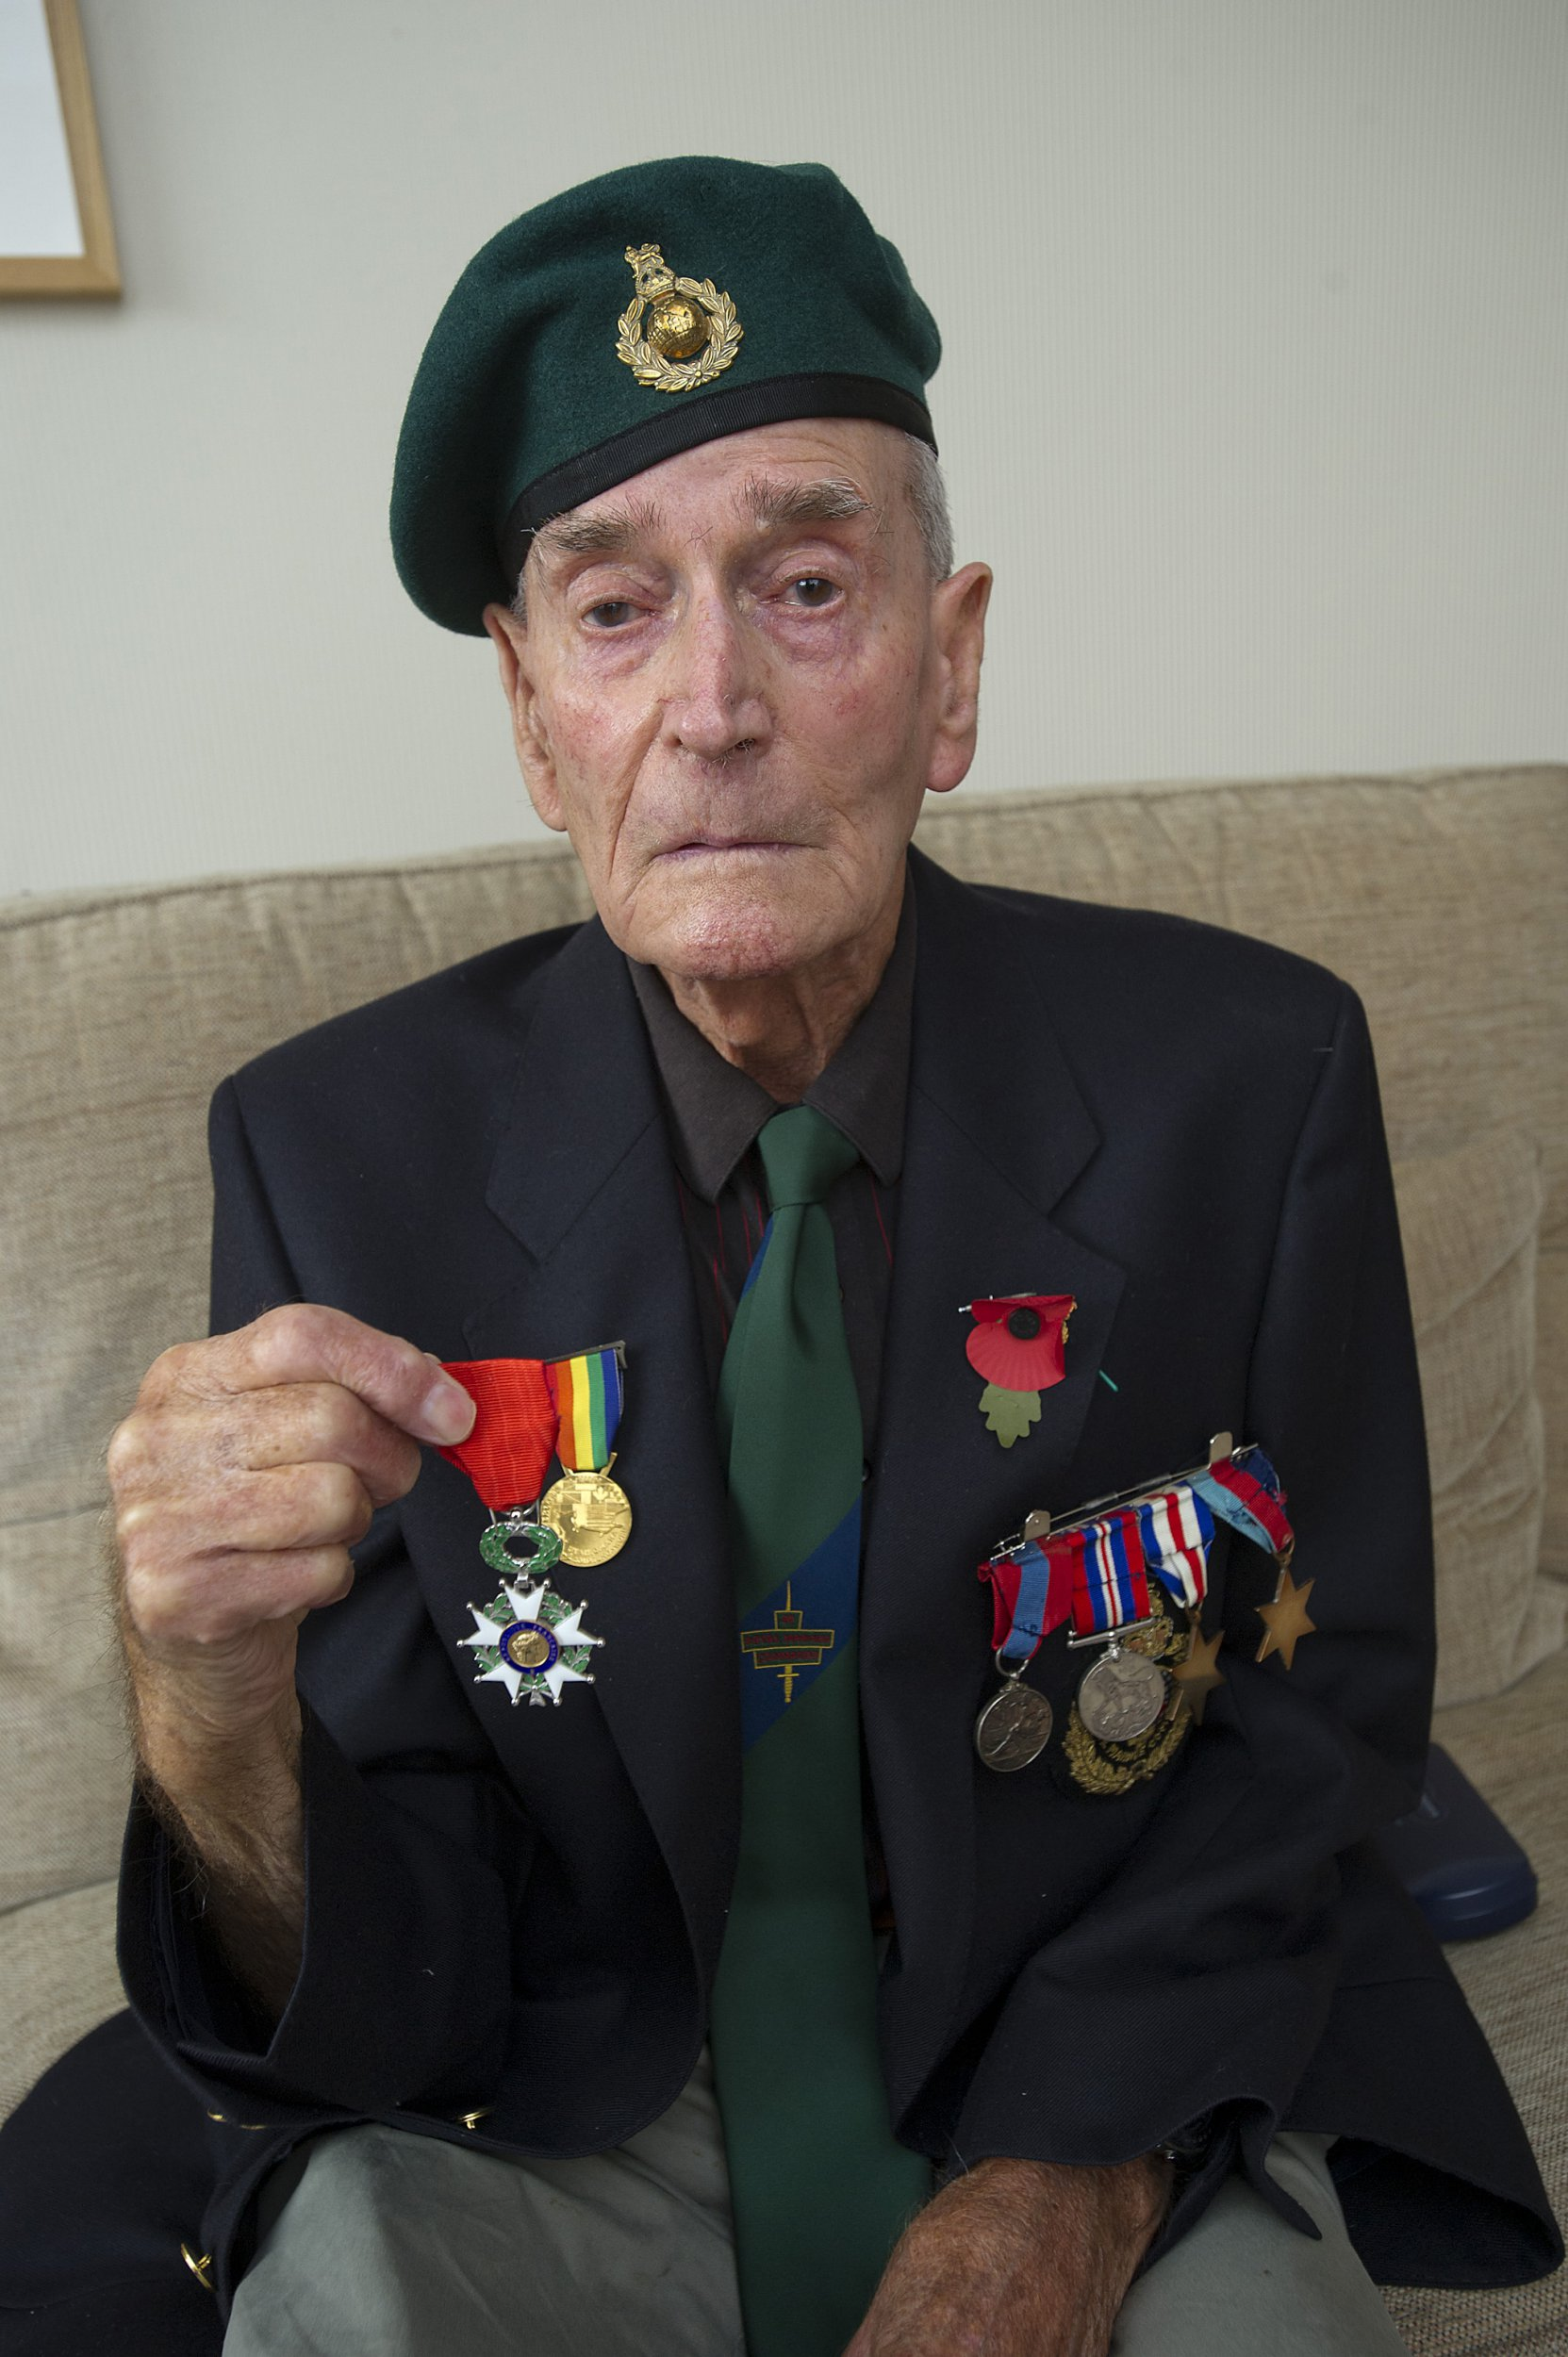 Copyright Pic by Andrew Price/View Finder Pictures-Chester 07774611778 PLEASE DO NOT USE ONLINE UNTIL MIDNIGHT ON THE 23RD. Picture taken 230818. Caption: Former Royal Marrine Commando Eric Vaughan with his medals. While Eric was on holiday visiting the battlefields for the first time since 1944 a neighbour rang and said his home was being burgled. When he returned home he found that they had taken his wartime souvenirs, including two watches and money from the time including a Nazi Reichmark.??? See story from Glyn Bellis on 07836 553901.